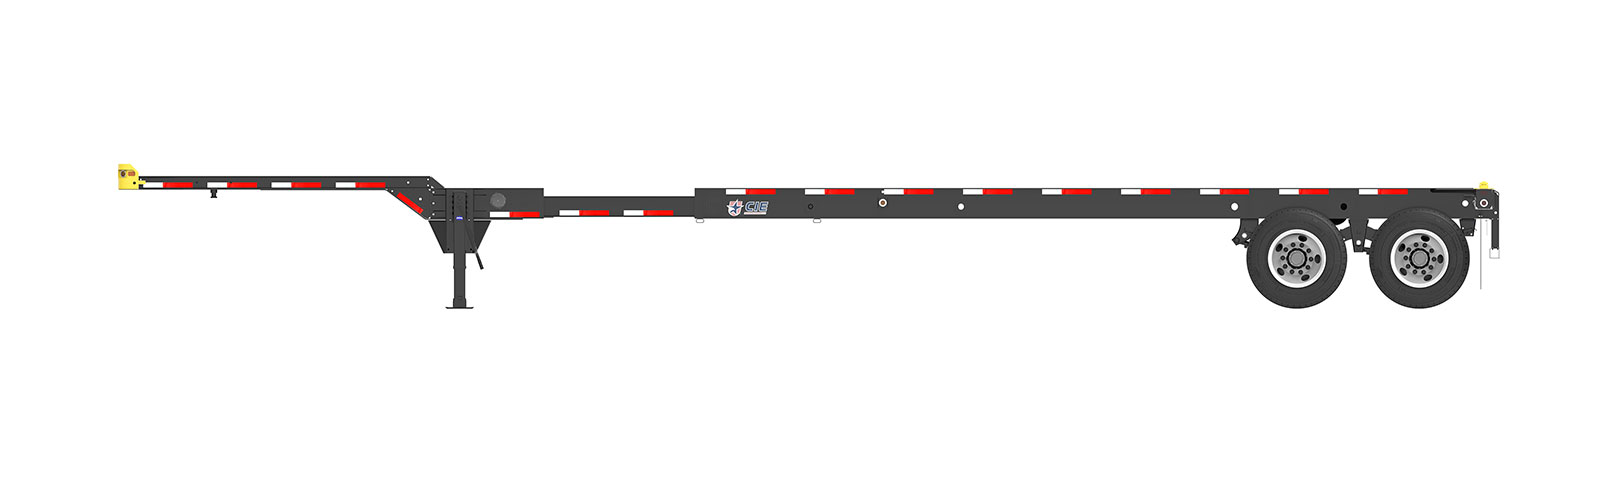 40-45' Extendable Tandem Container Chassis Orthographic Side View Final